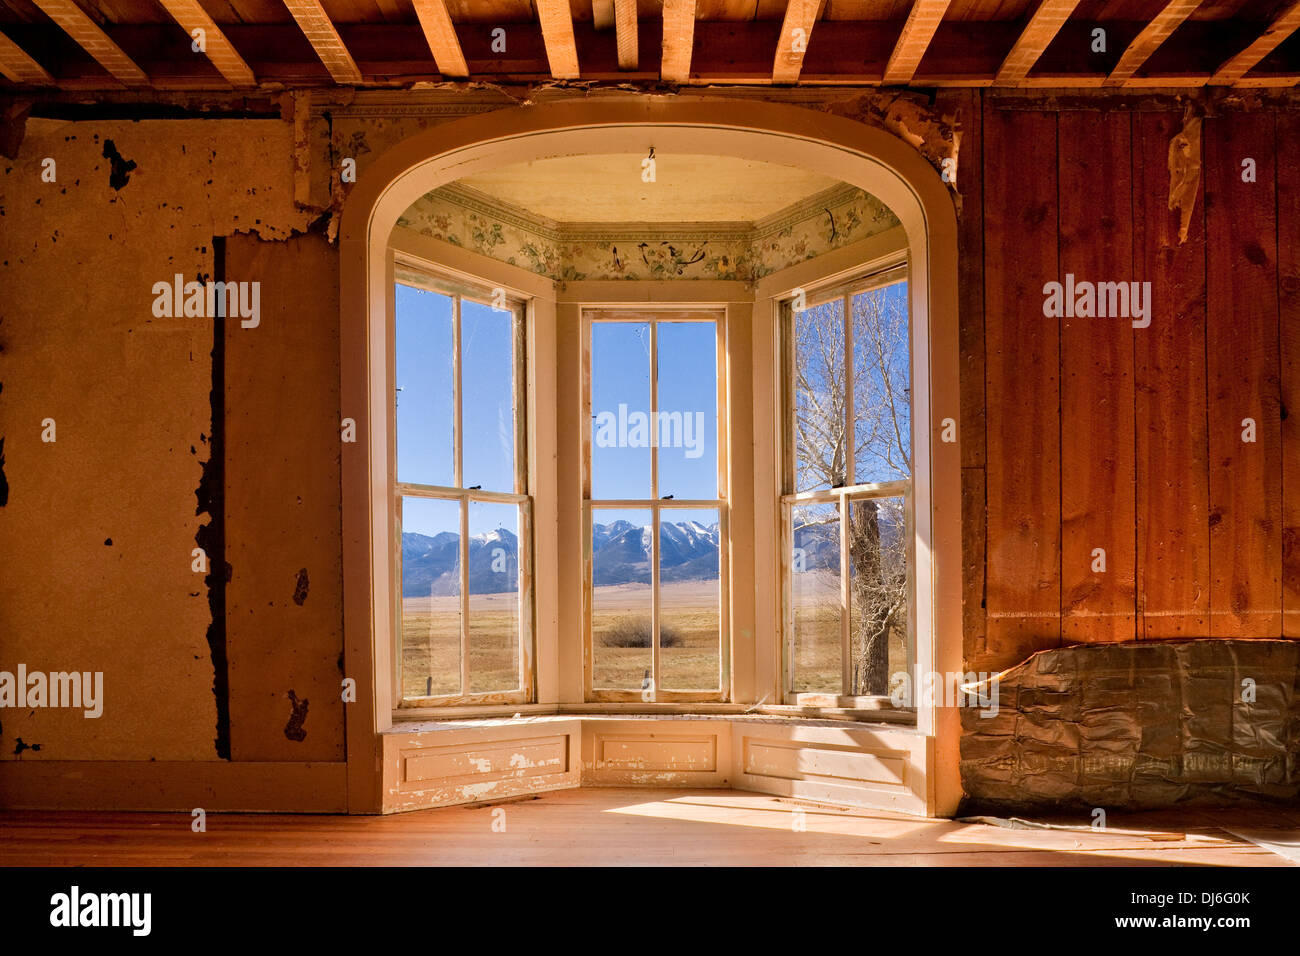 Inside Beckwith Ranch in Wescliffe, Colorado - Stock Image